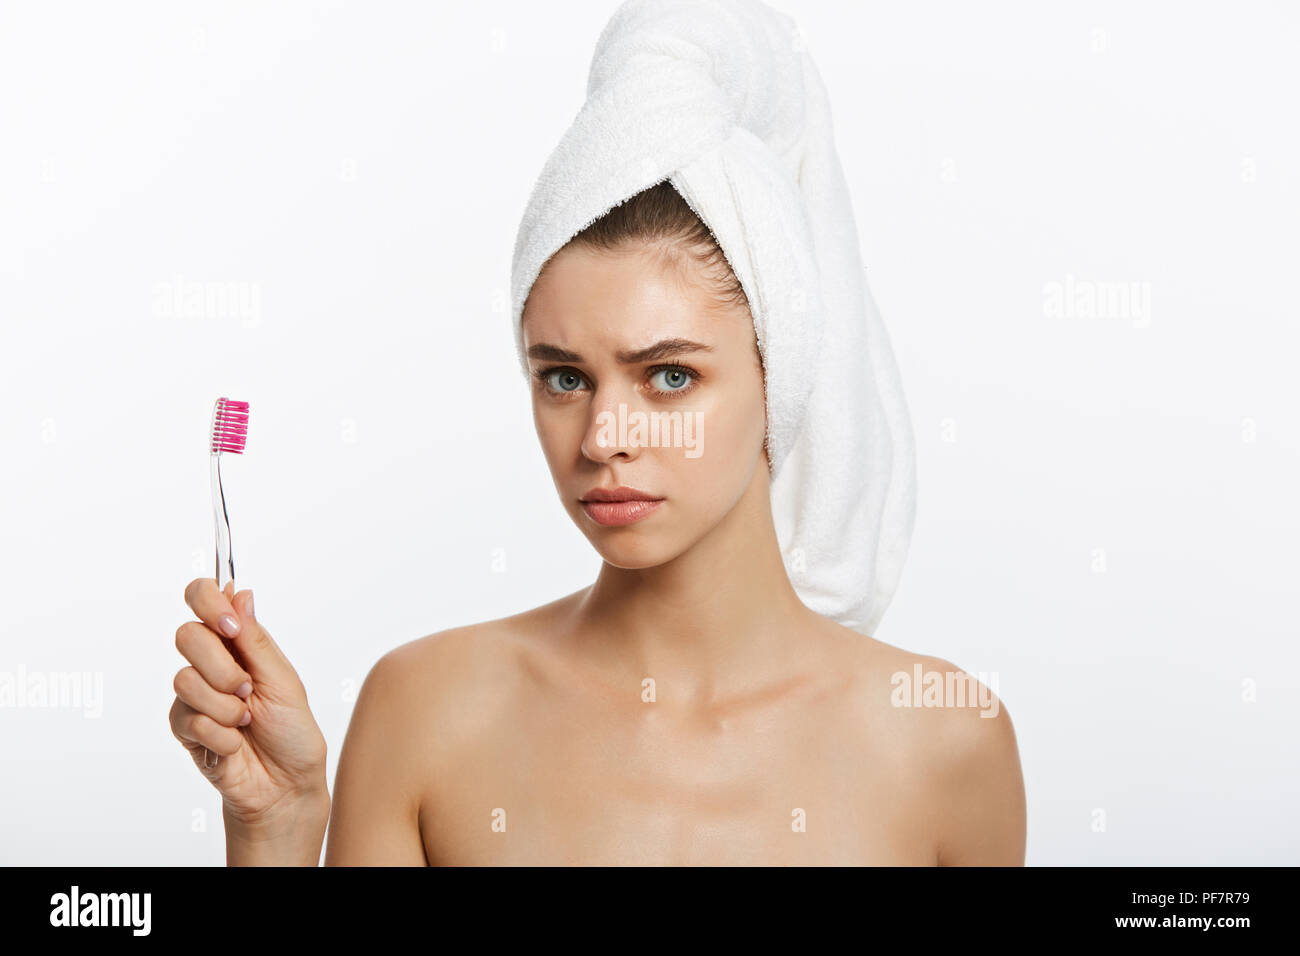 Serious pretty woman brushing her teeth on white background - Stock Image